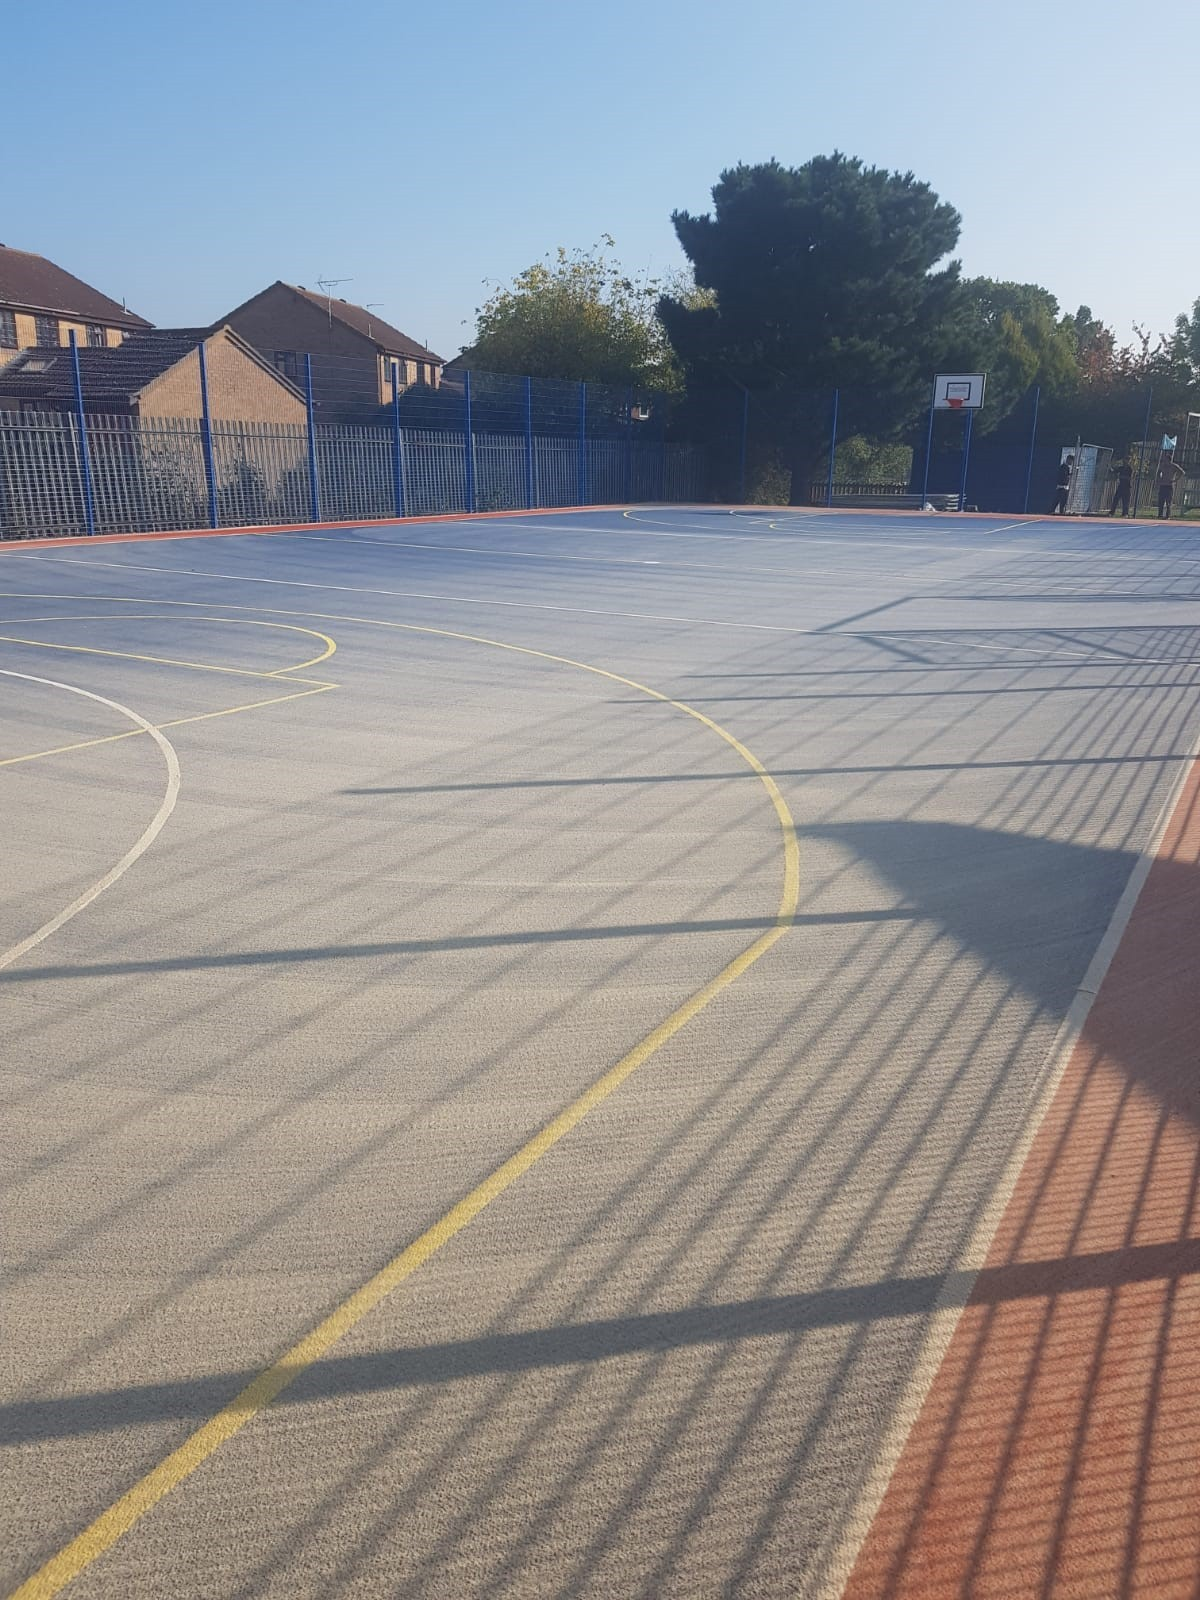 This recently installed MUGA pitch is ready for the children of Chelmsford